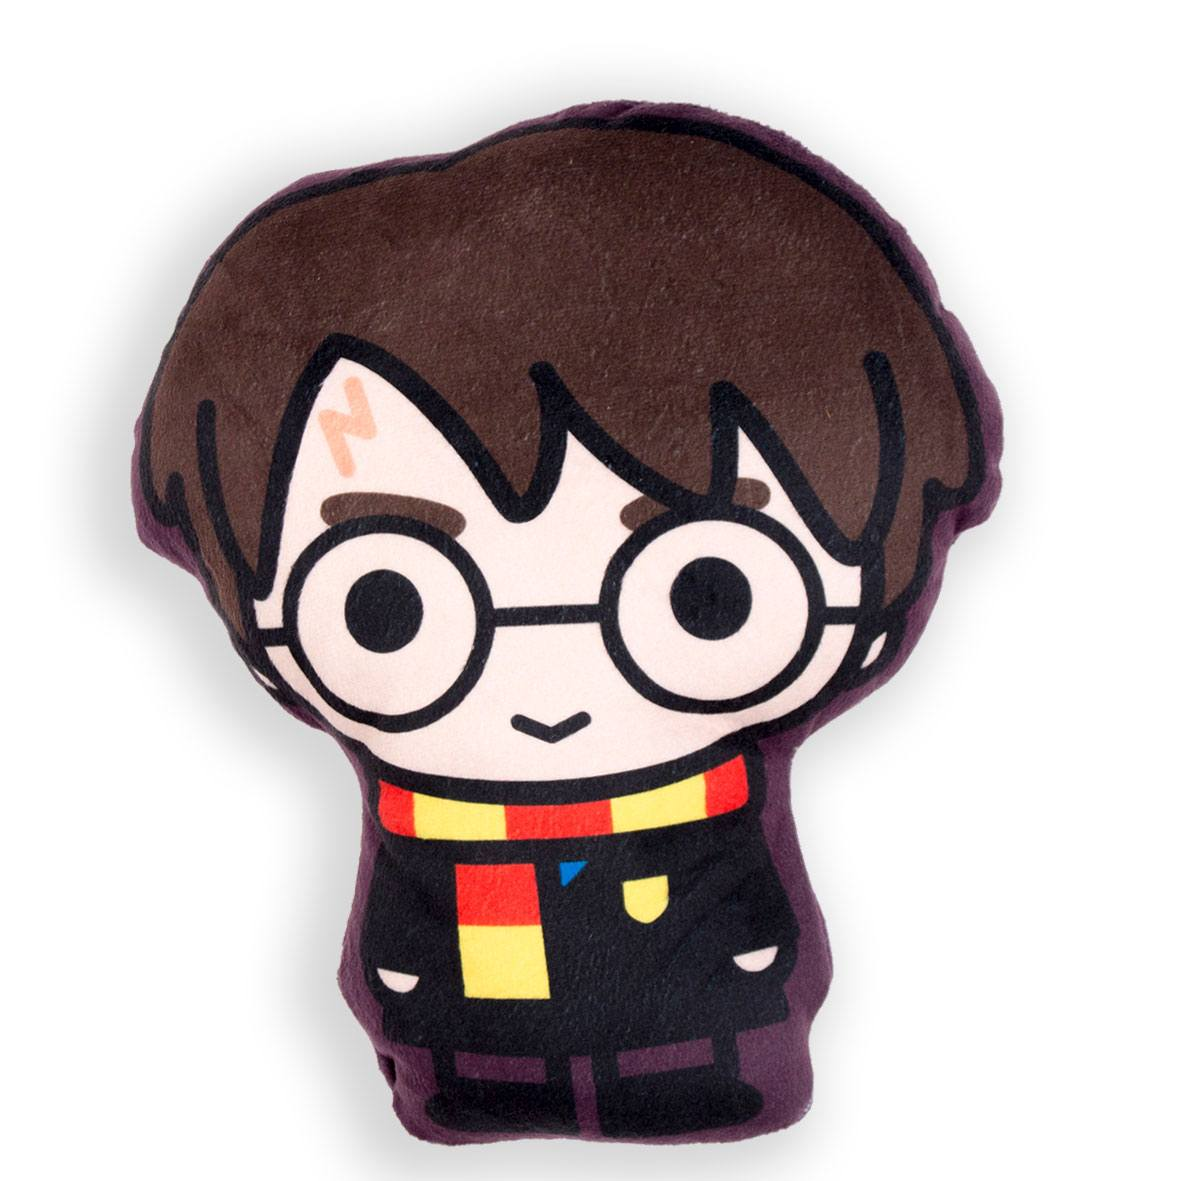 Harry Potter Cushion Harry 35 x 29 cm